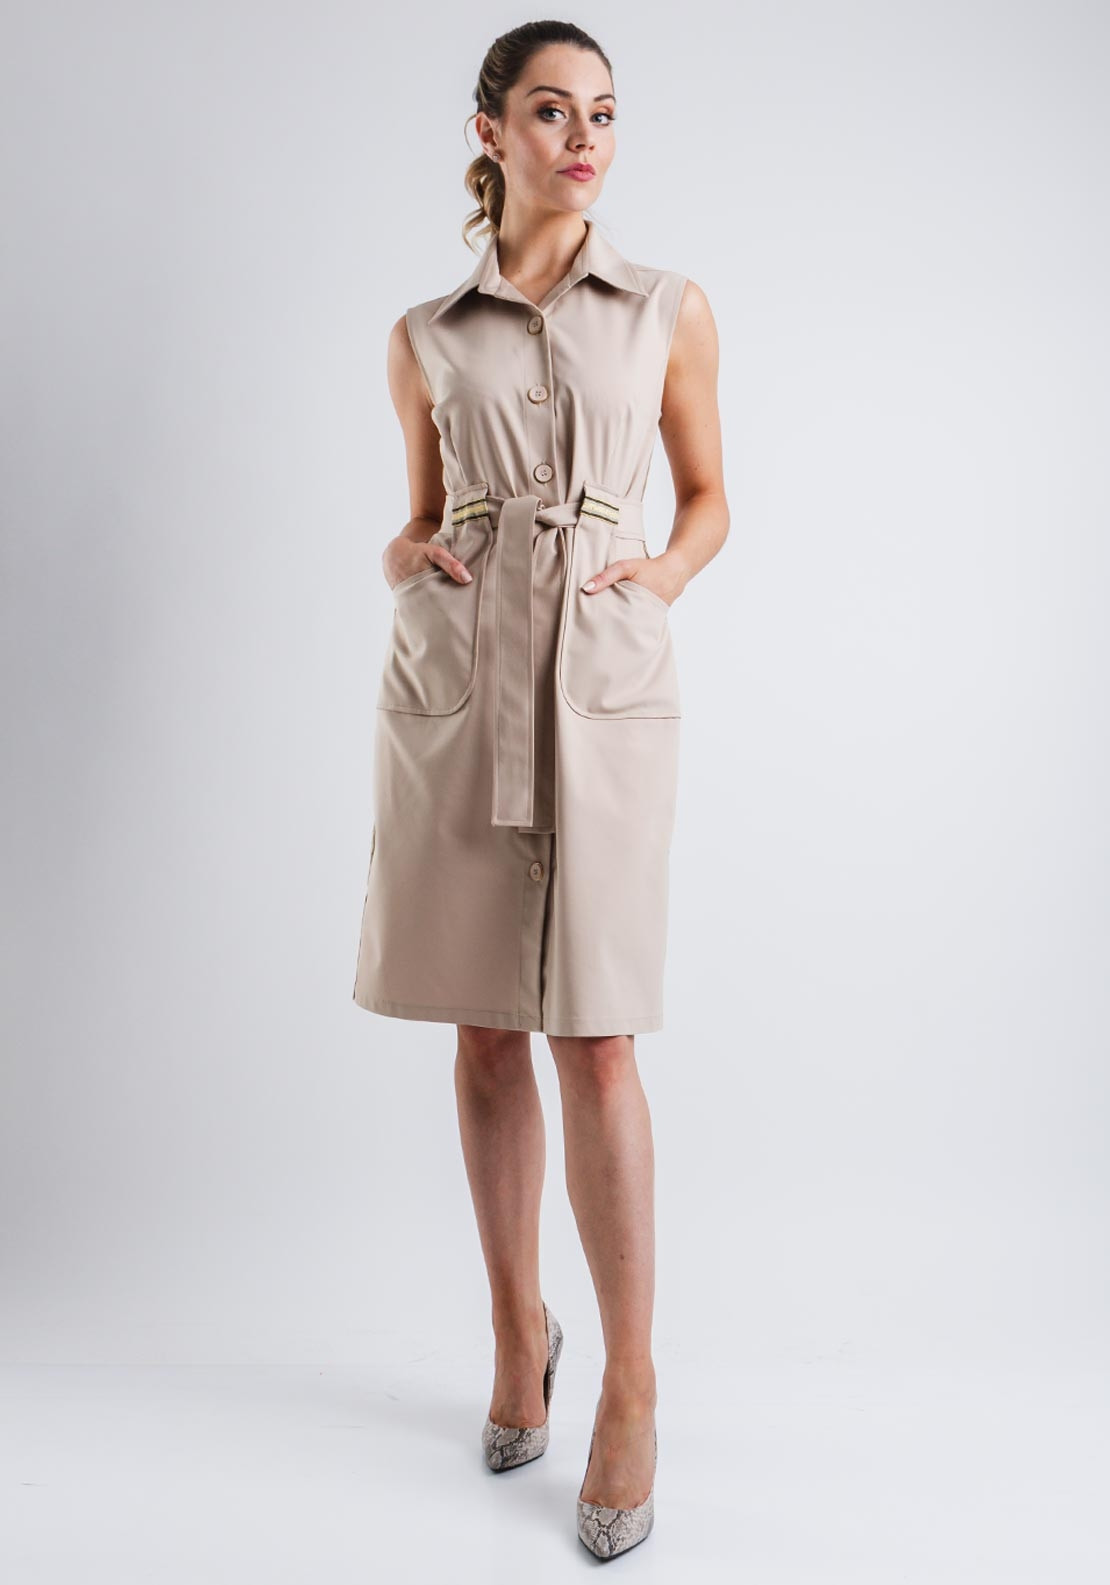 dc95c60bb631 Camelot Sleeveless Button Front Shirt Dress, Taupe. Be the first to review  this product